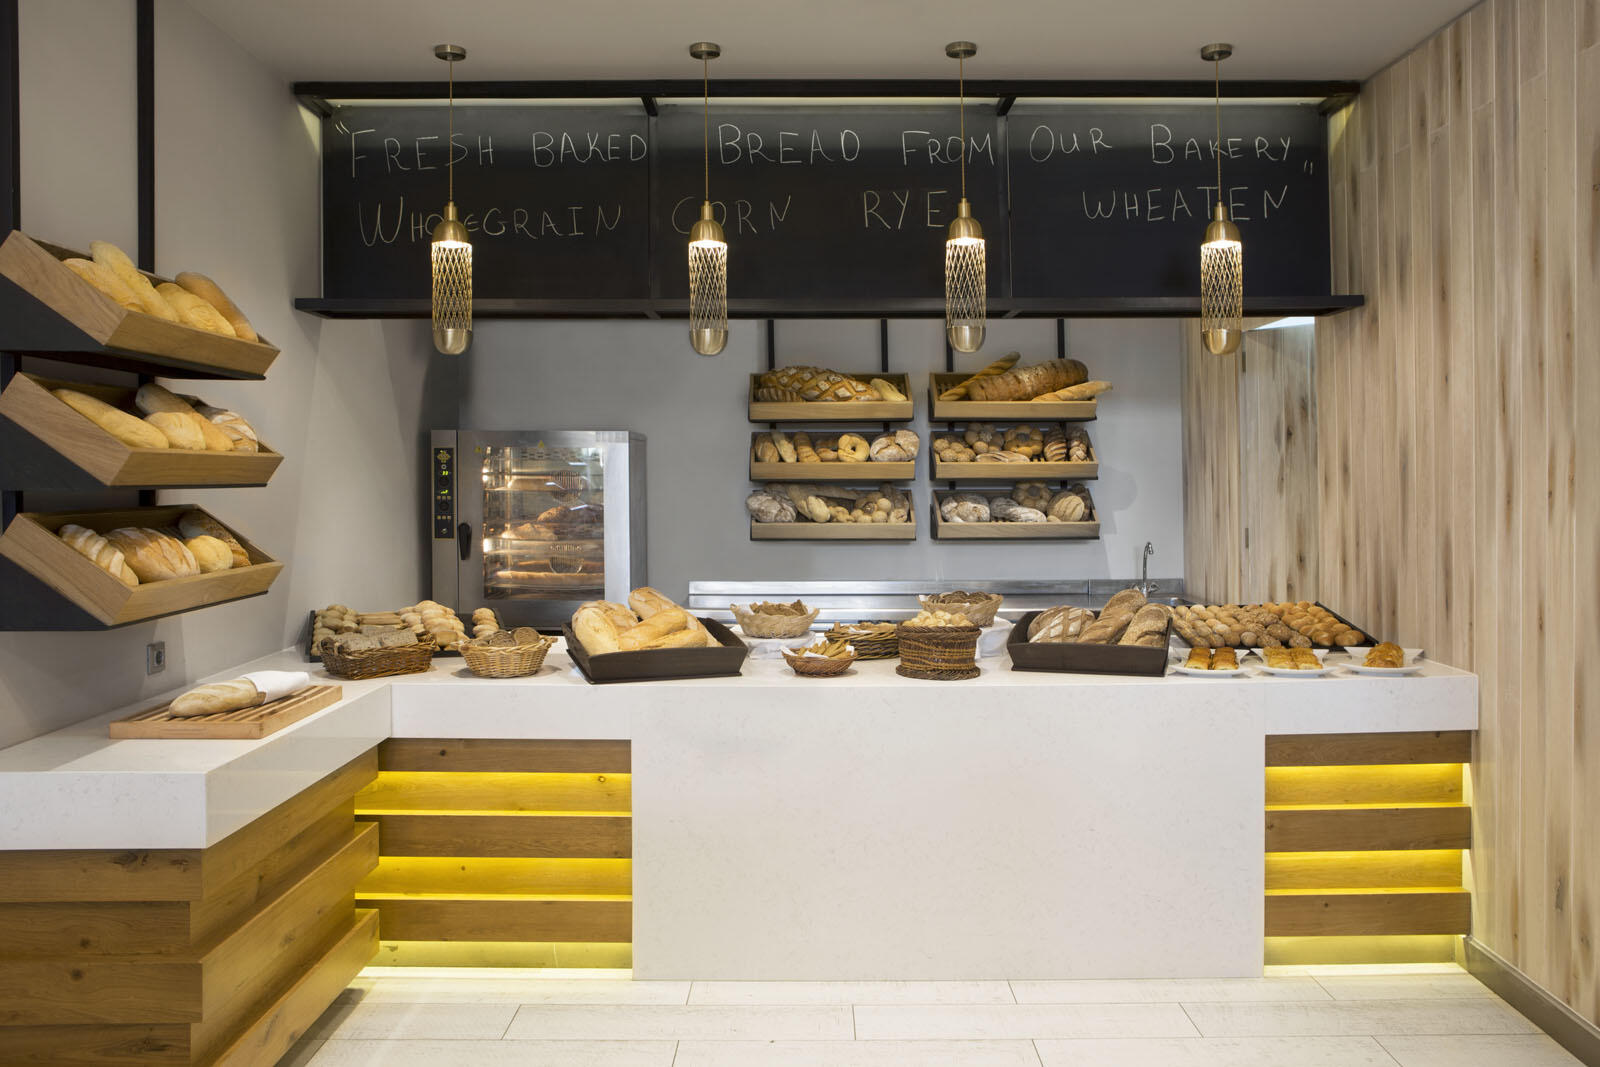 Main Restaurant Bakery at Agapi Beach Resort in Crete